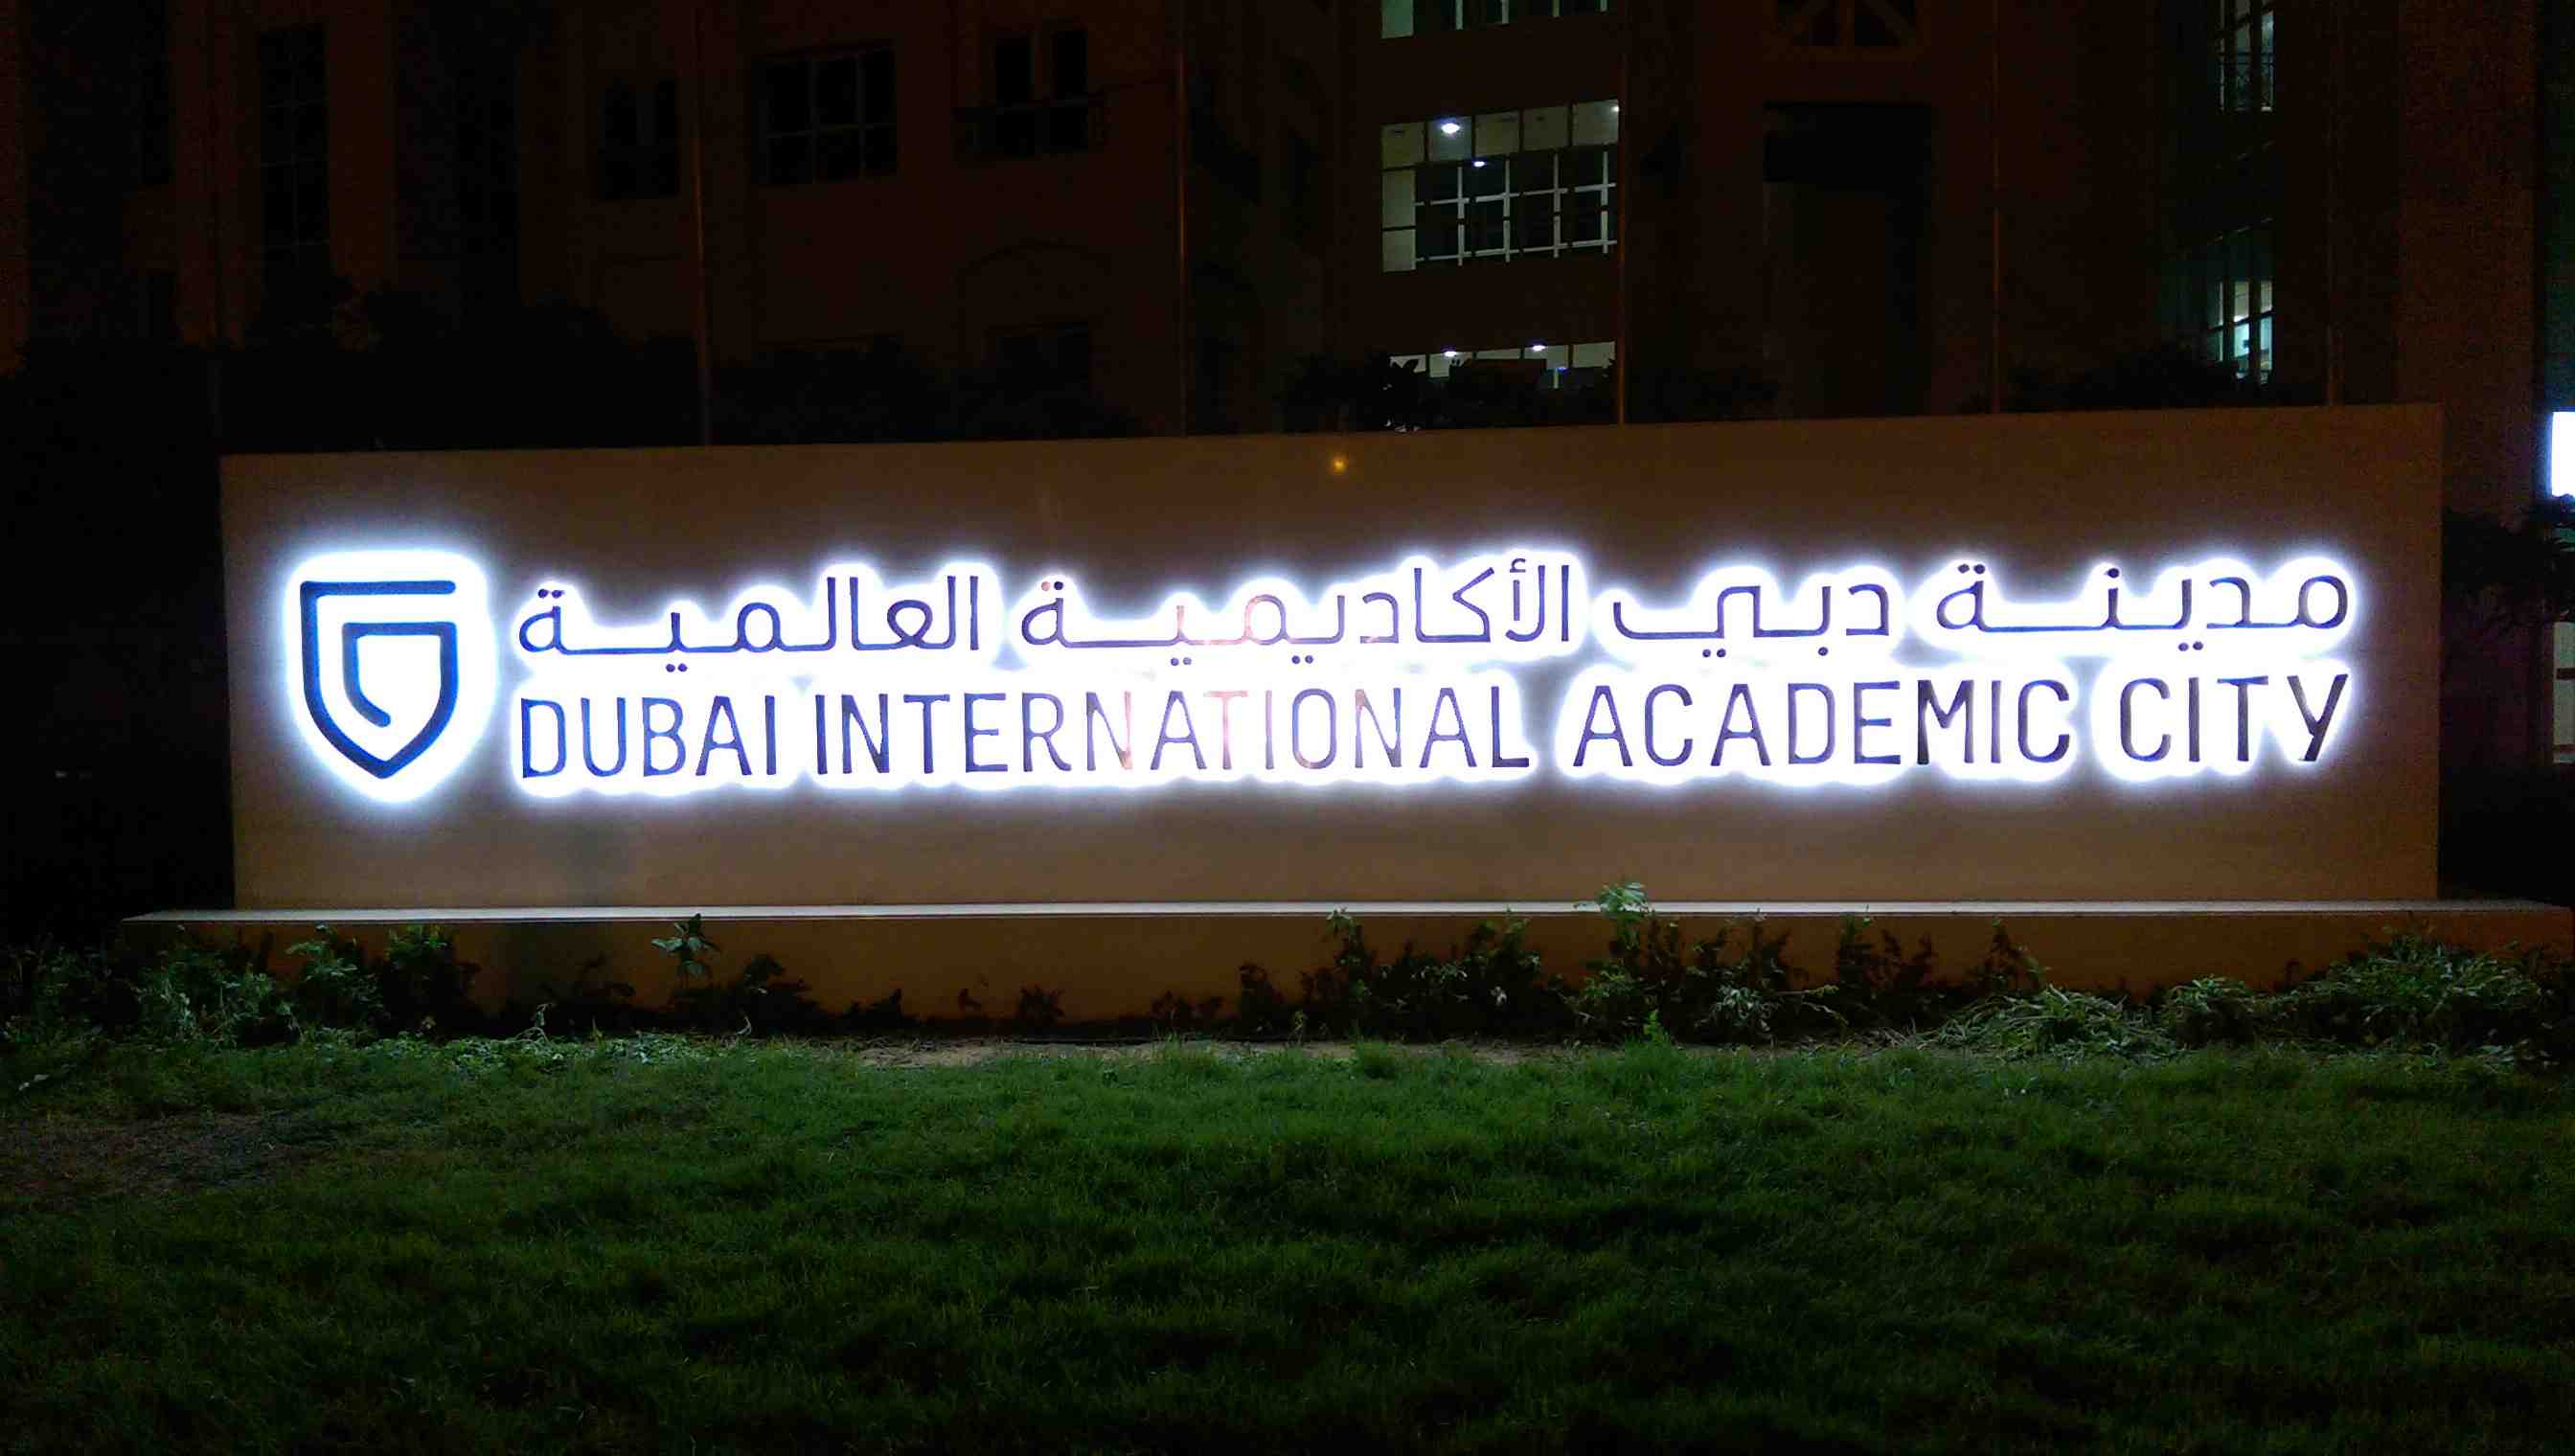 Signage - DUBAI INTERNATIONAL ACADEMIC